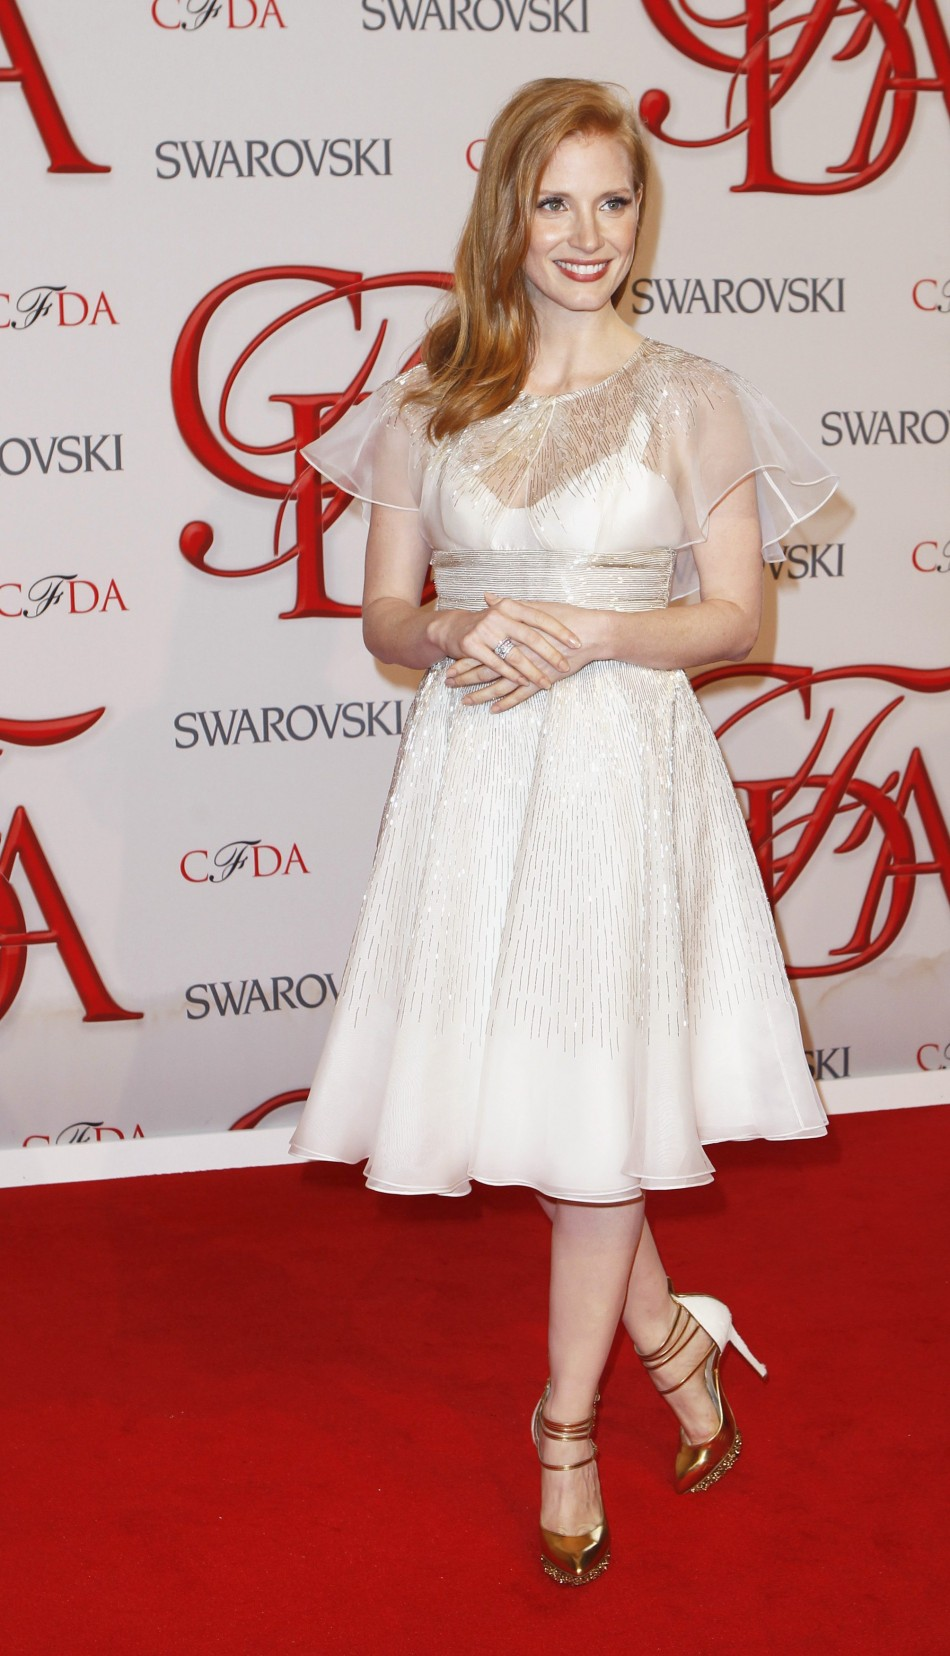 Actress Chastain arrives to attend the 2012 CFDA Fashion Awards in New York